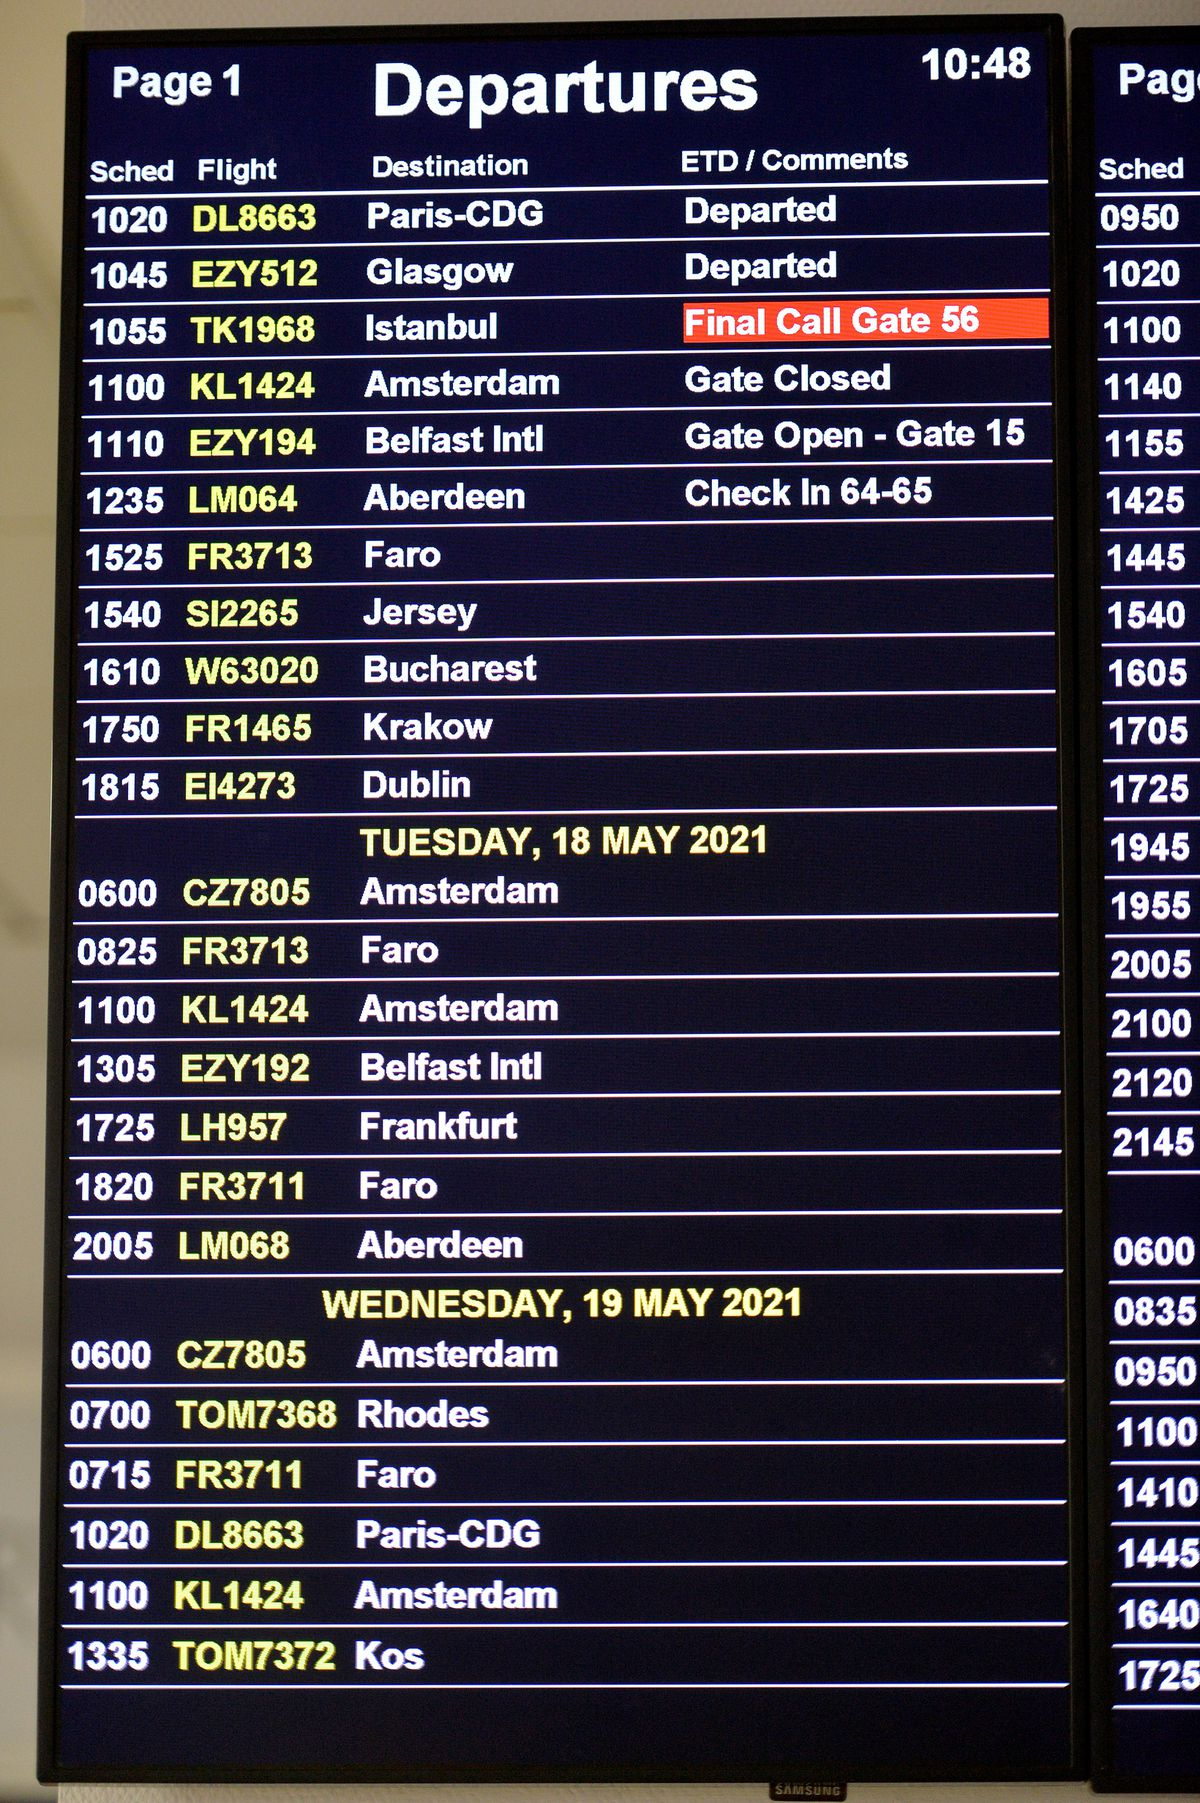 A list of the departures from Birmingham Airport